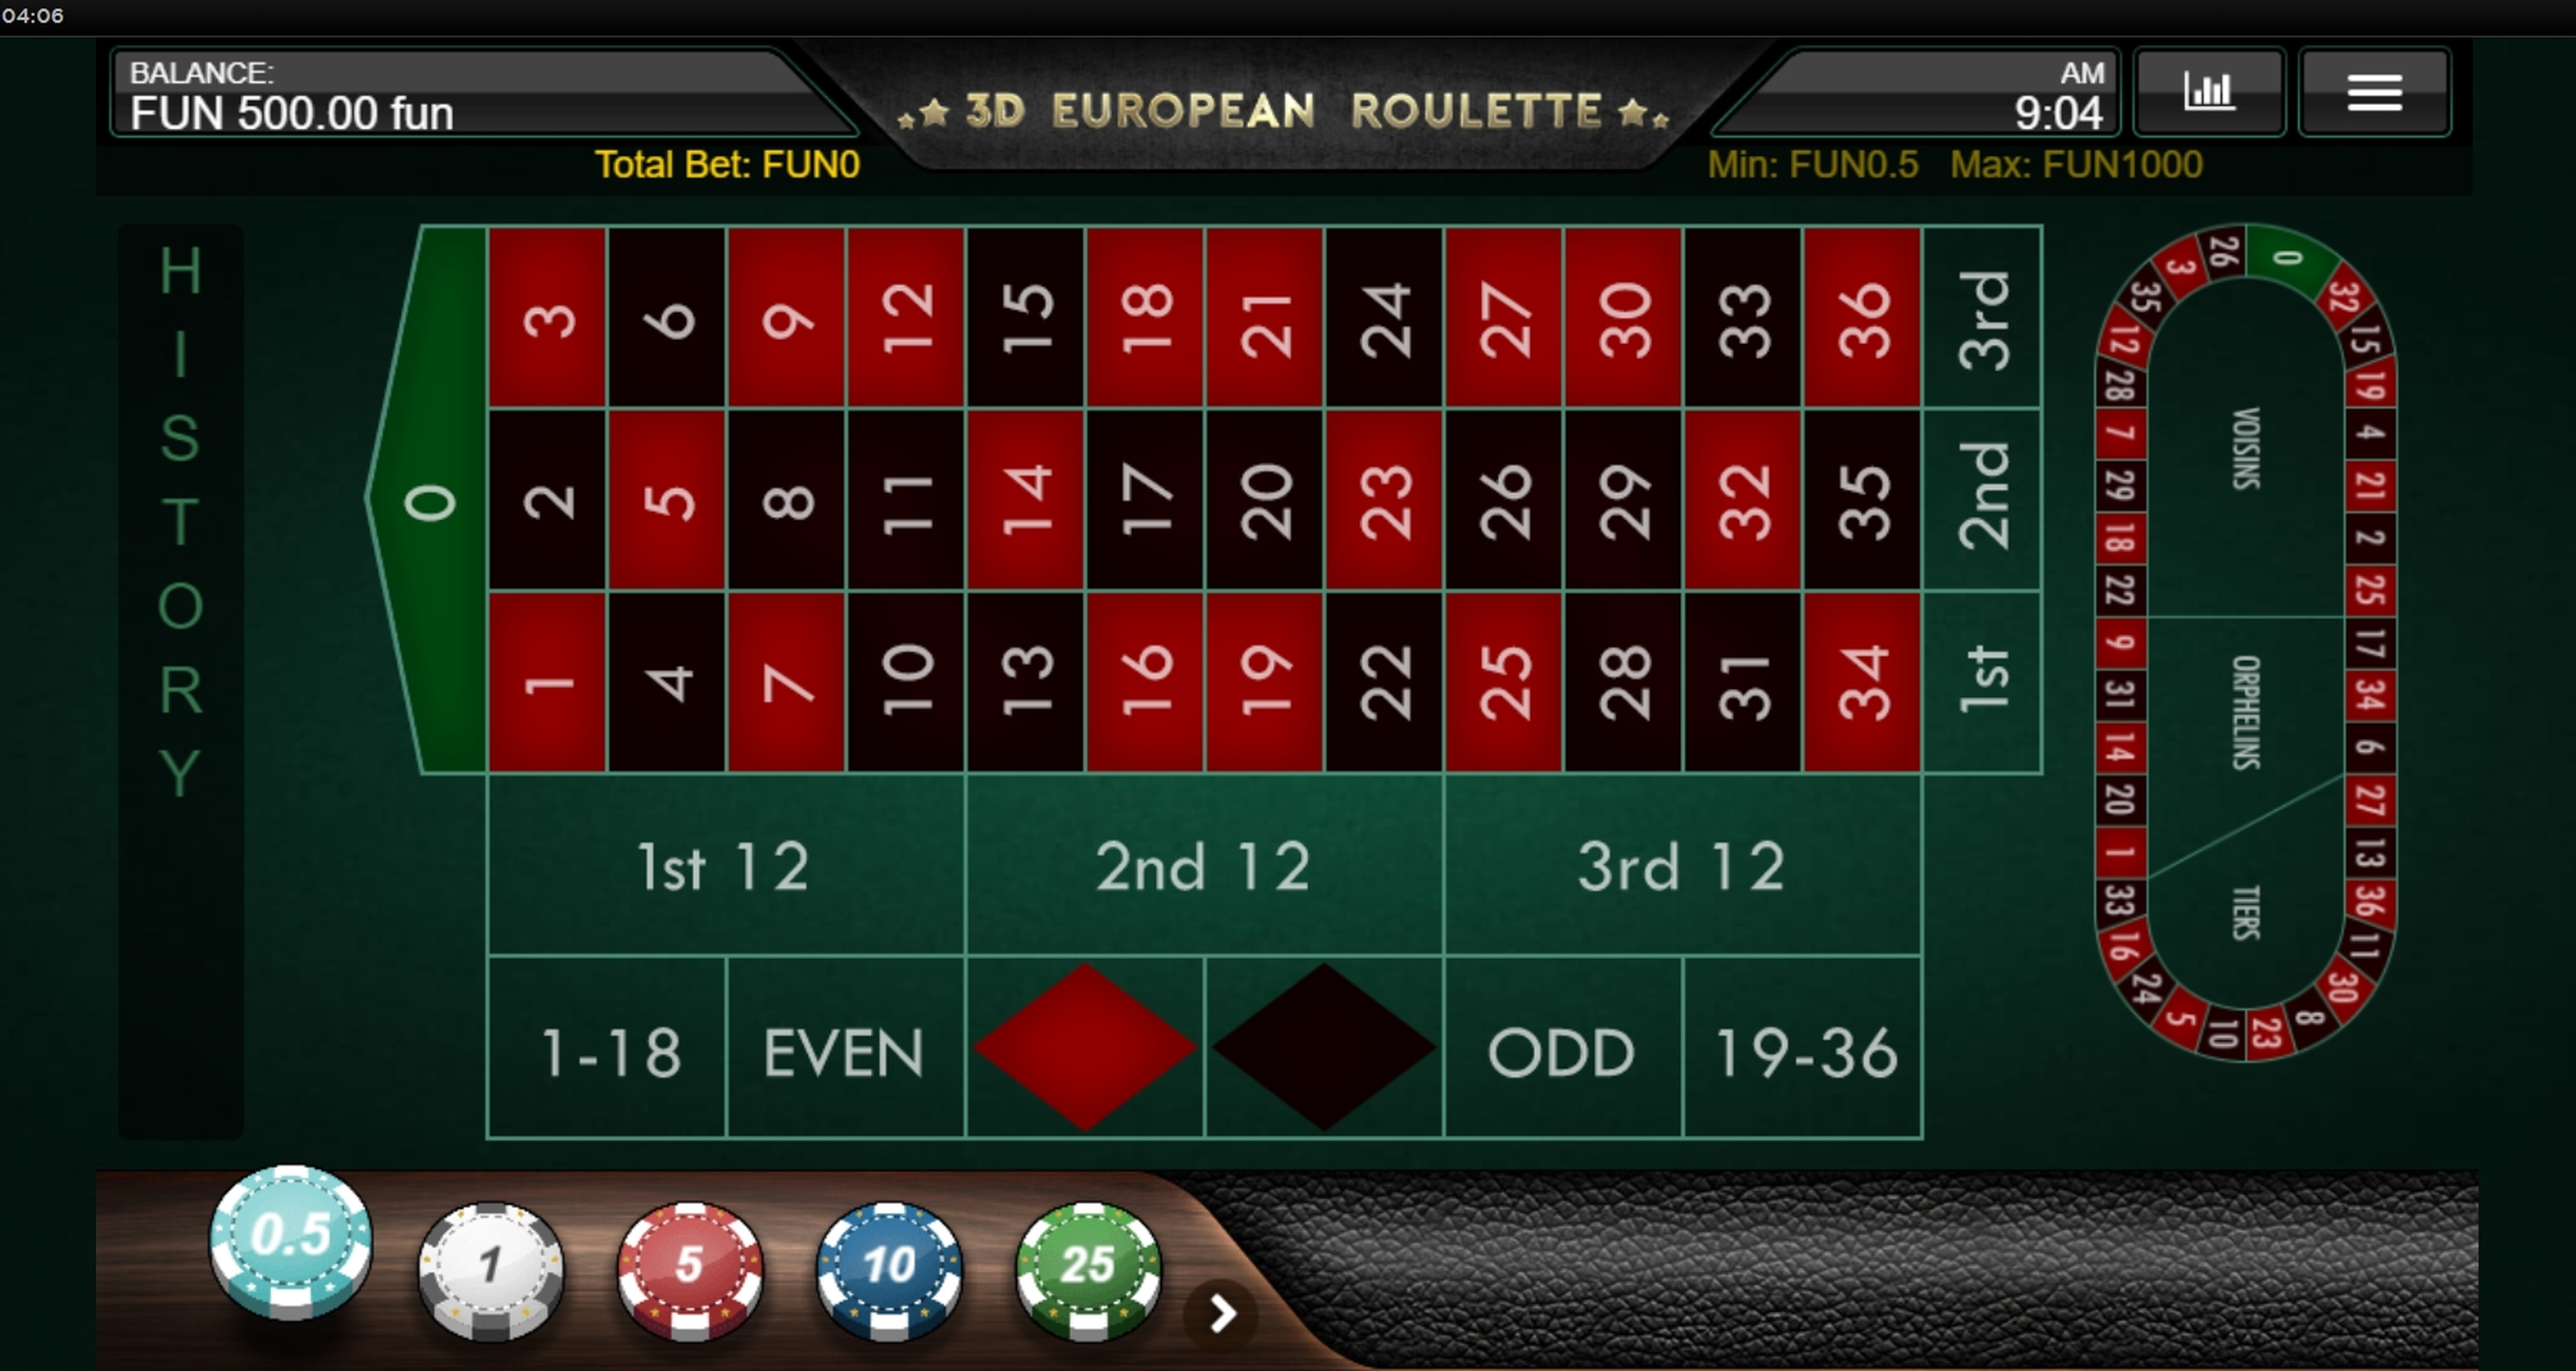 Reels in 3D European Roulette (IronDog) Slot Game by IronDog